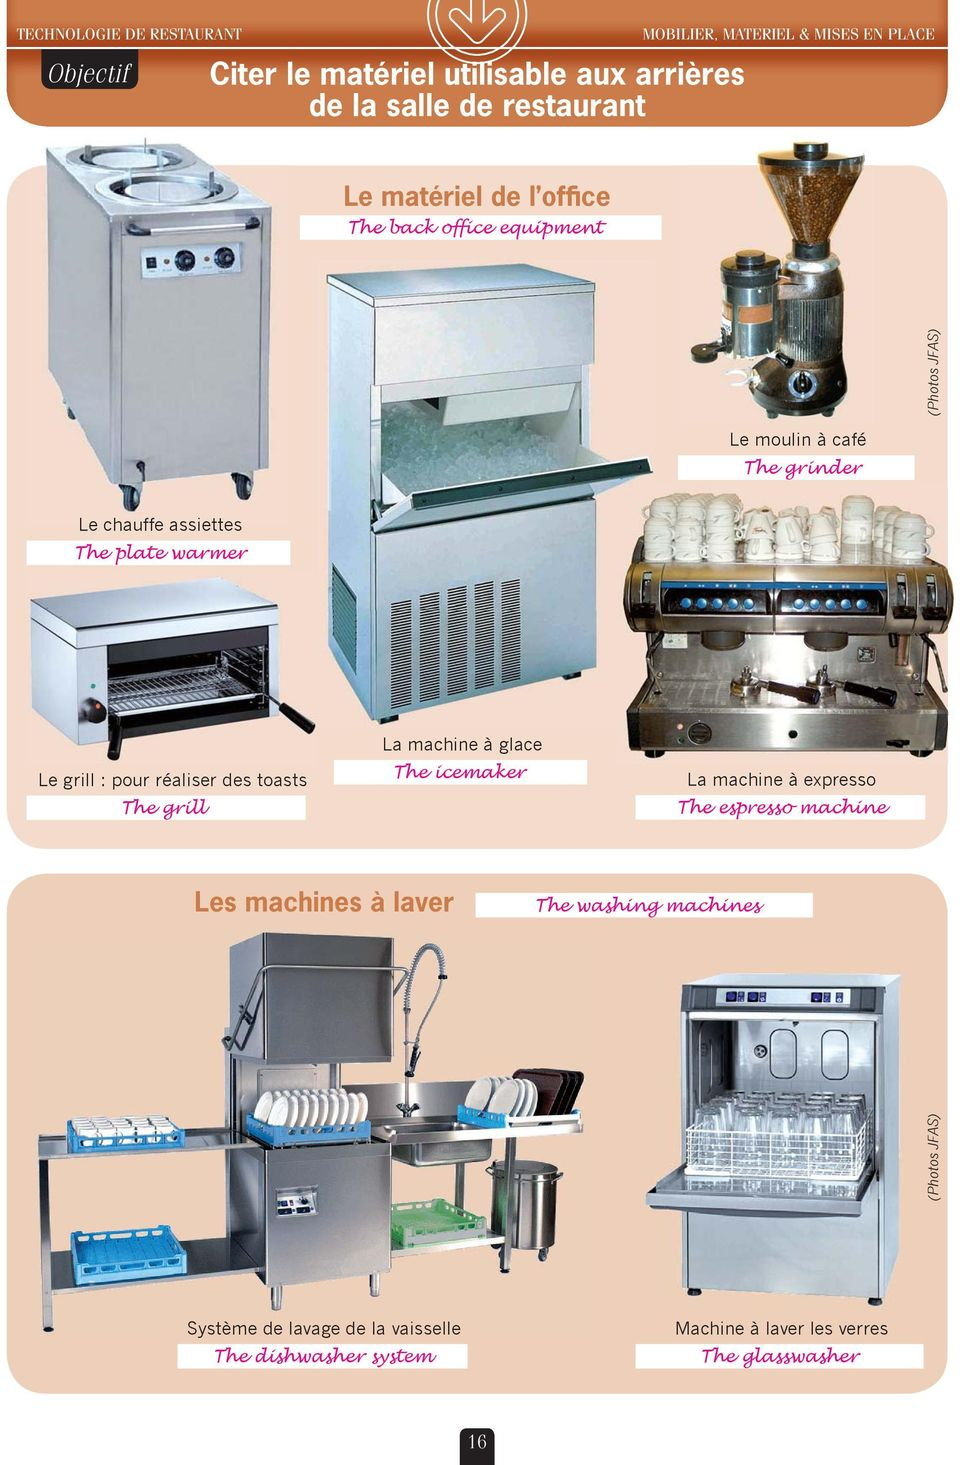 grill : pour réaliser des toasts The grill La machine à glace The icemaker La machine à expresso The espresso machine Les machines à